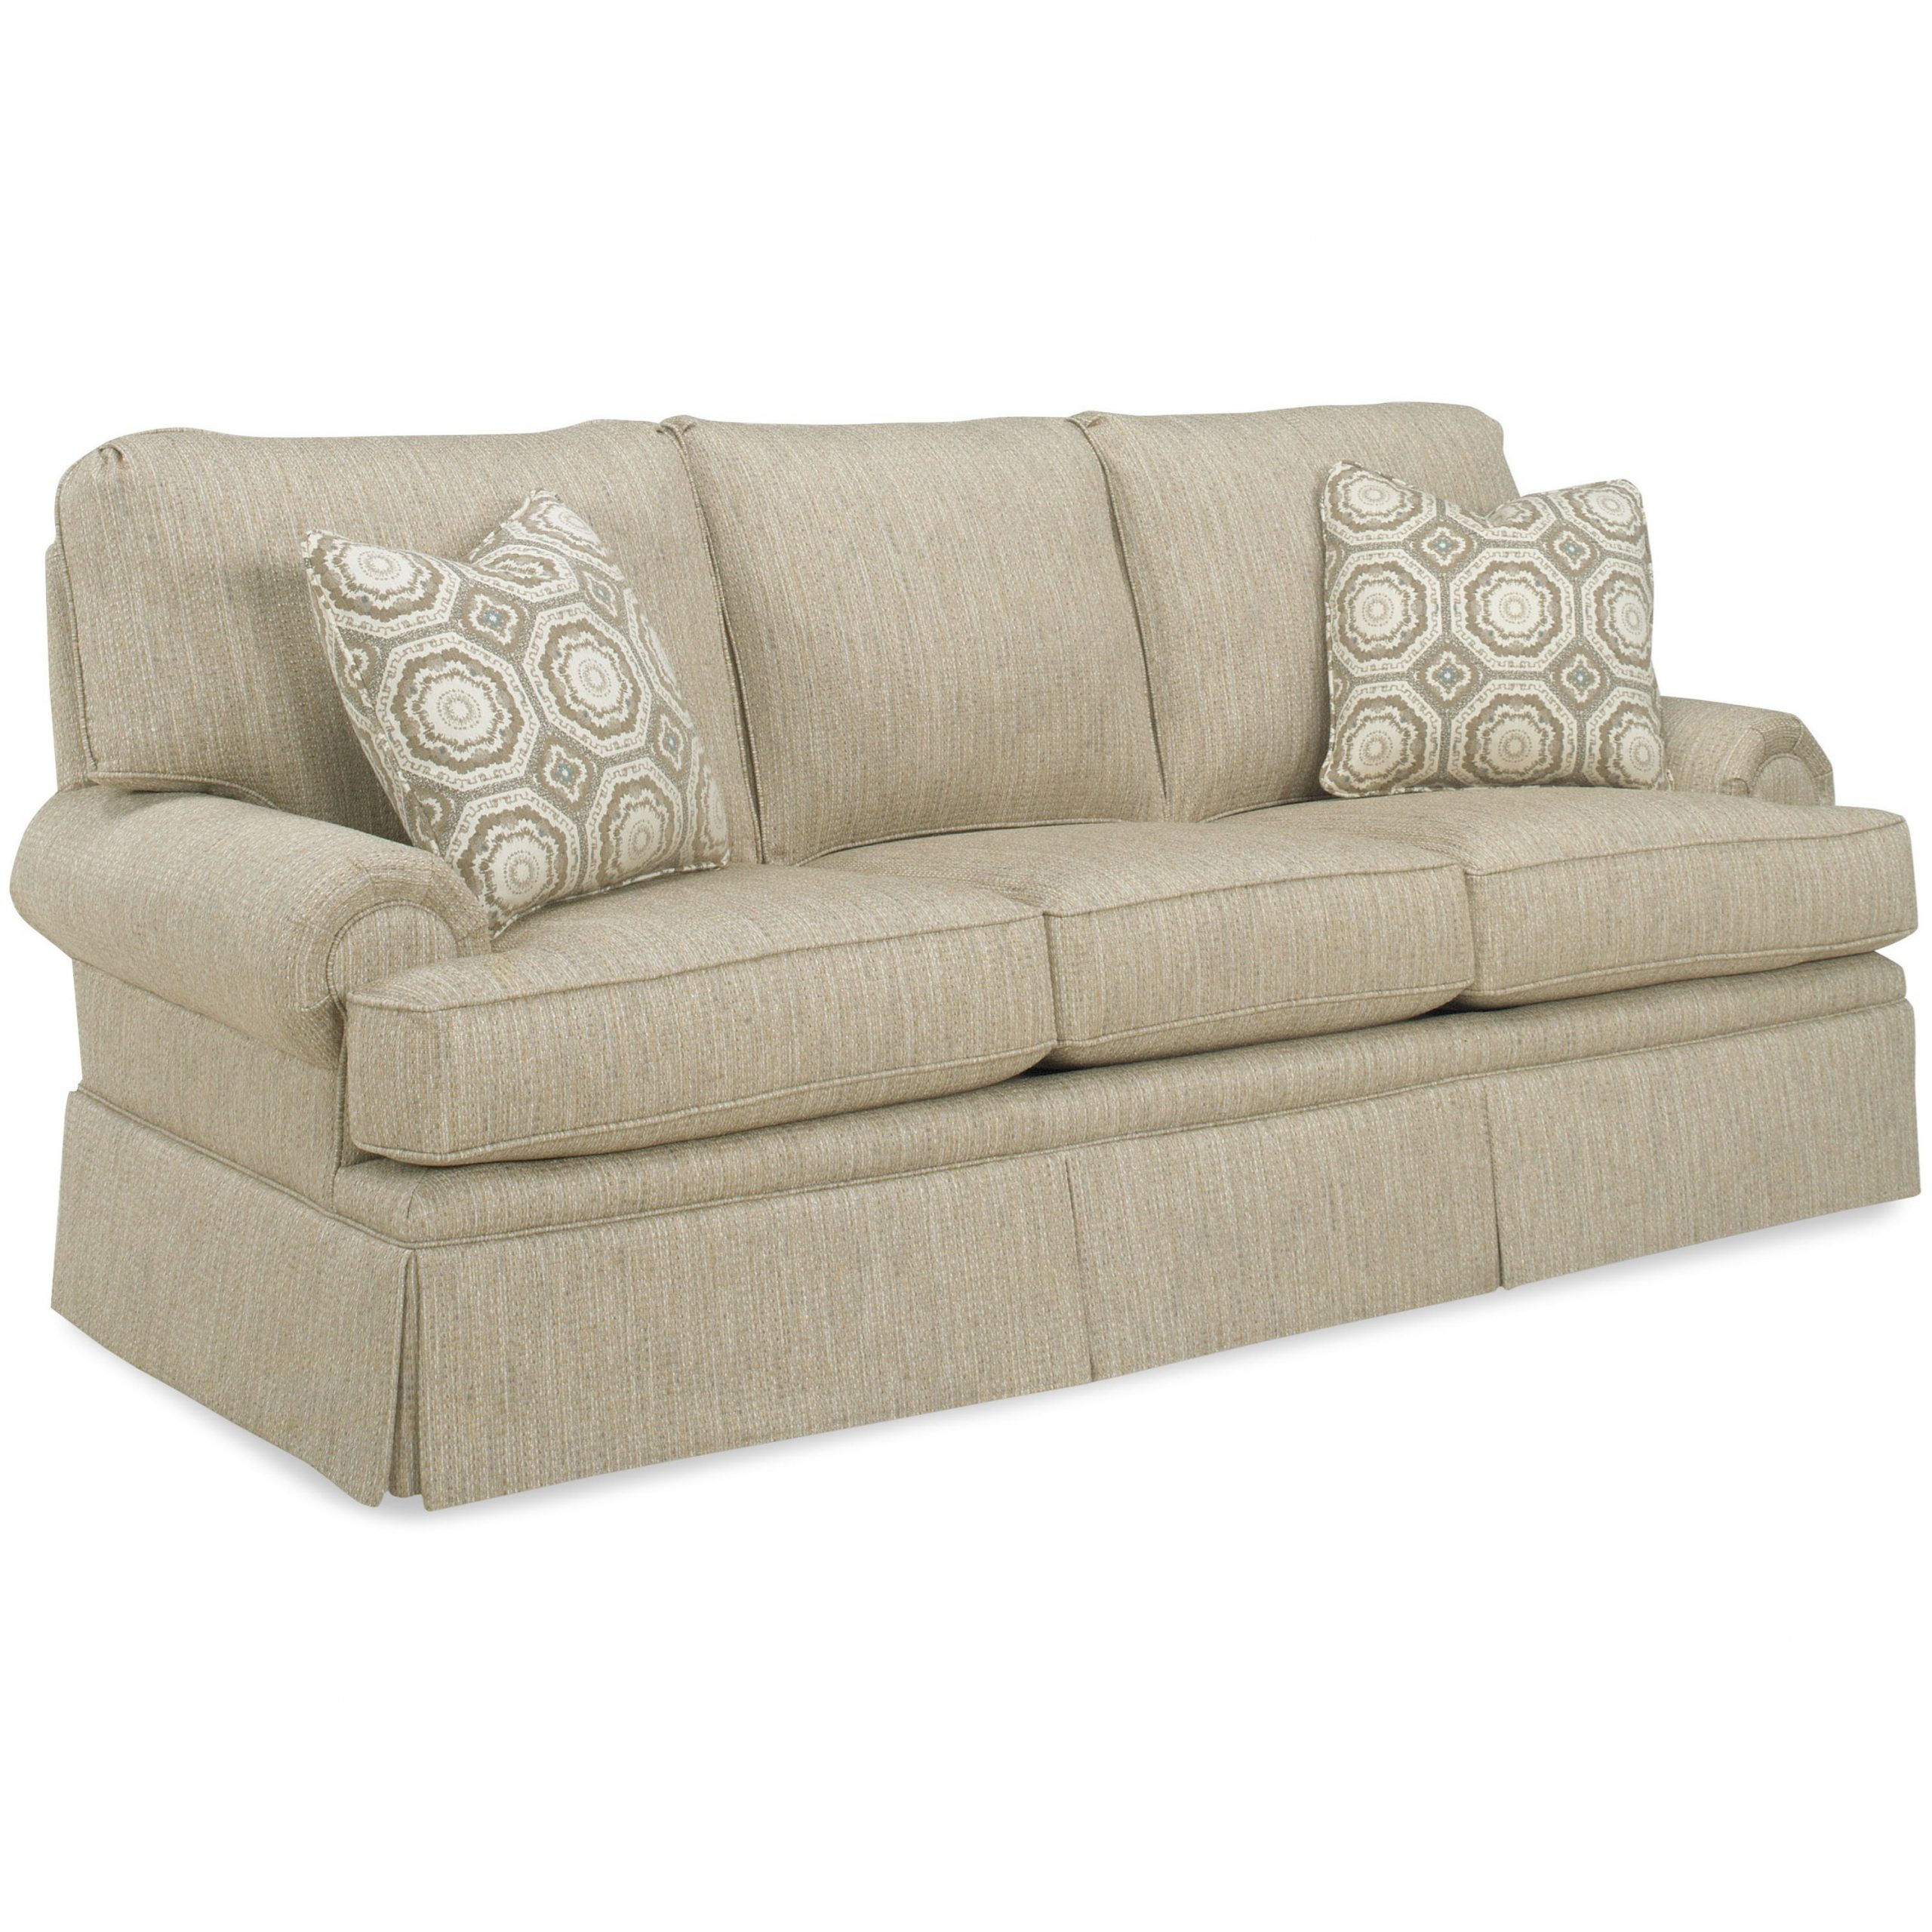 Temple Furniture Winston Sofa With Skirt | Mueller Pertaining To Winston Sofa Sectional Sofas (View 5 of 15)